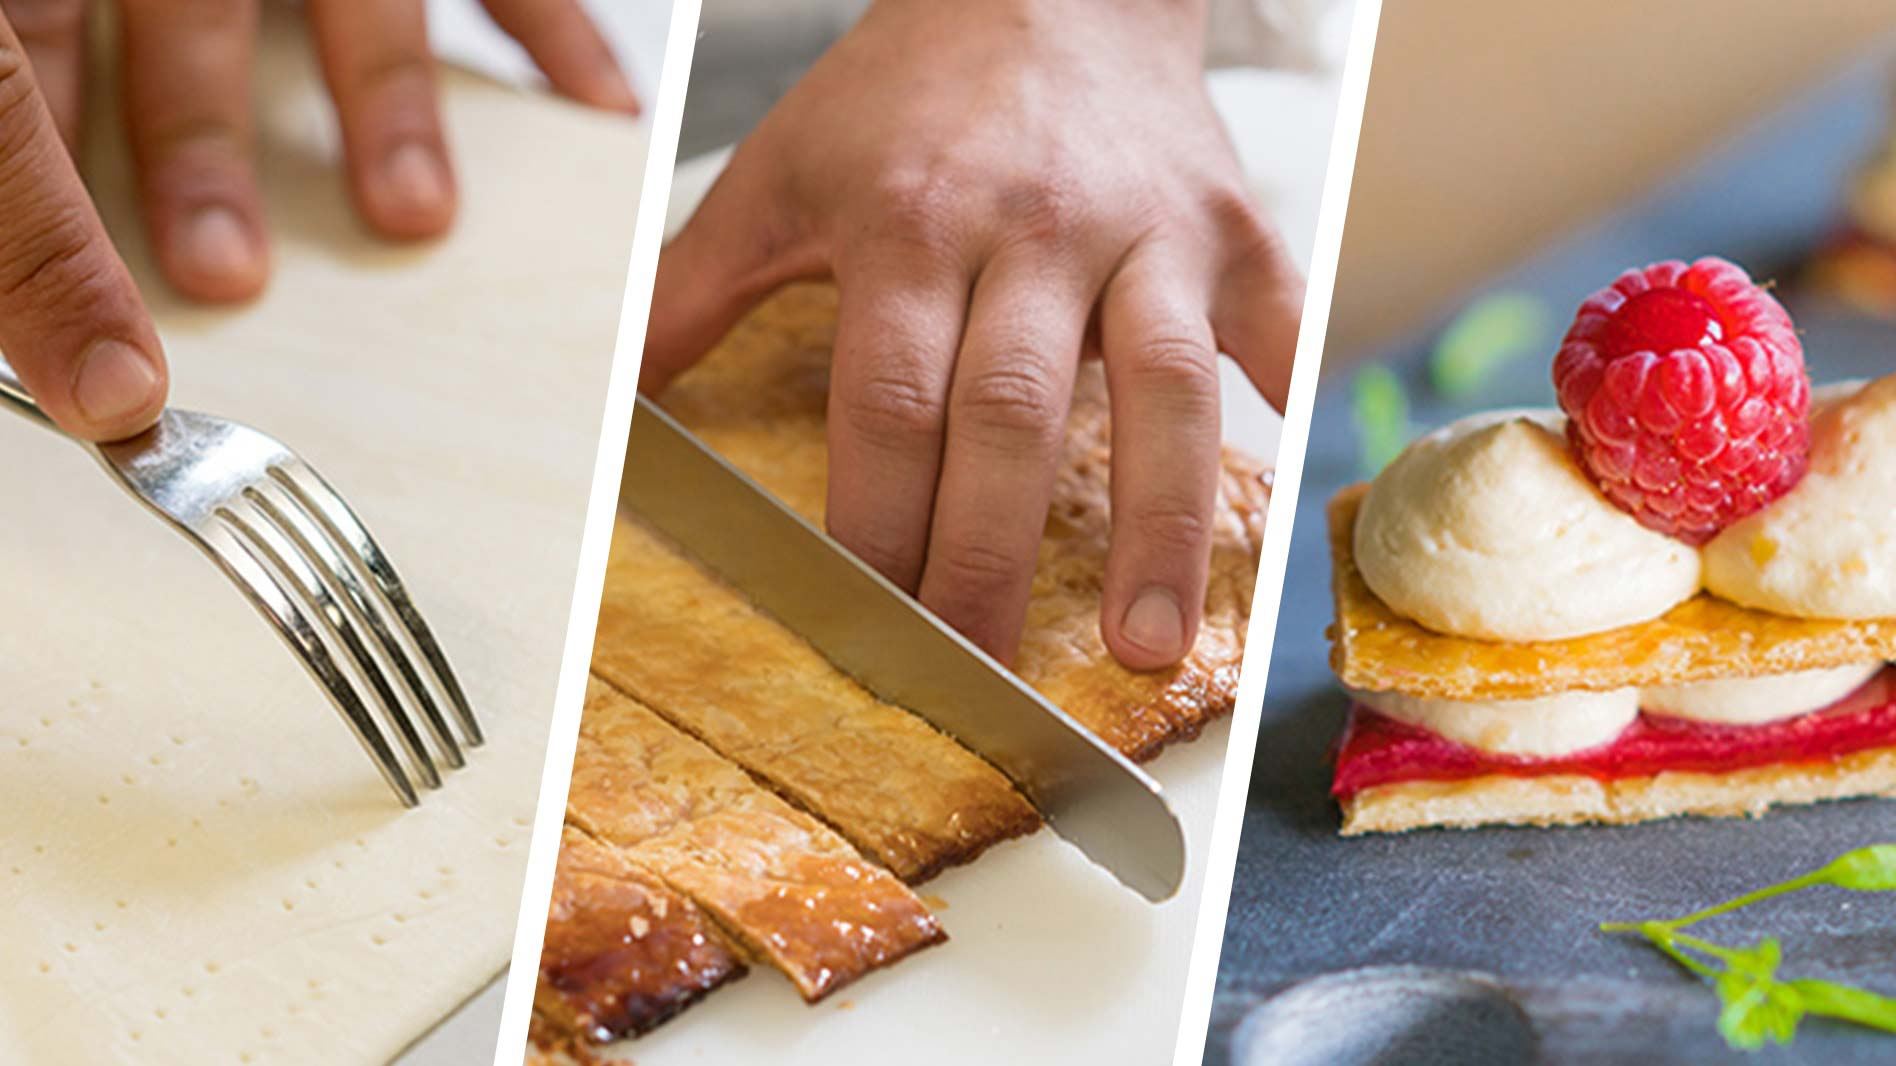 Blind baking pastry: A skill every aspiring chef must know